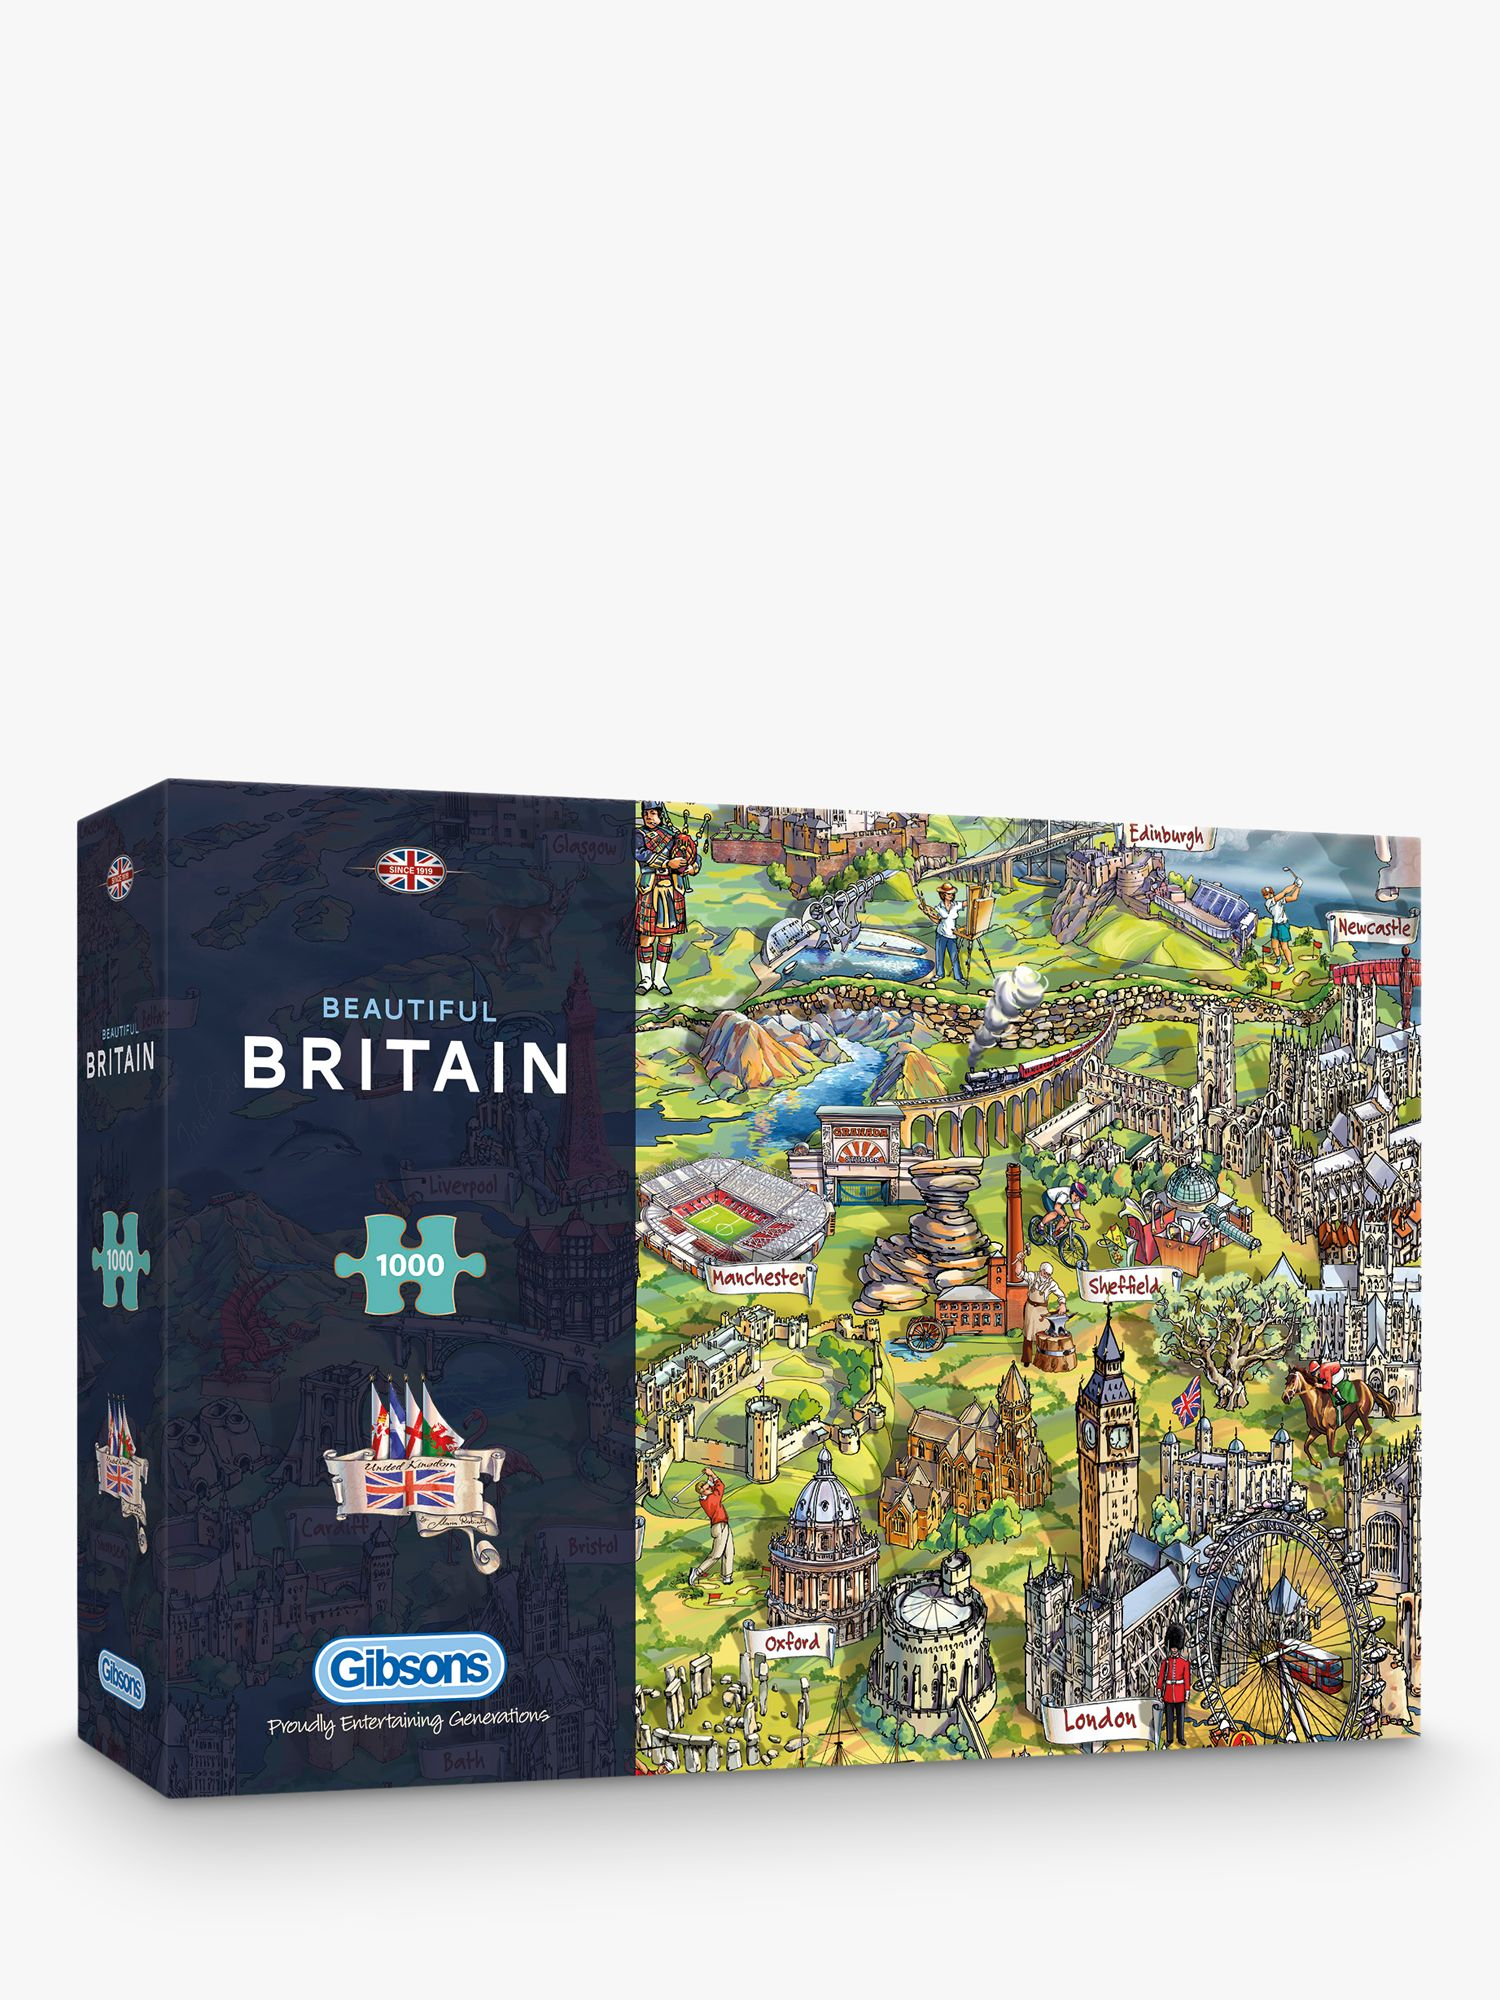 Gibsons Gibsons Beautiful Britain UK Map Jigsaw Puzzle, 1000 pieces